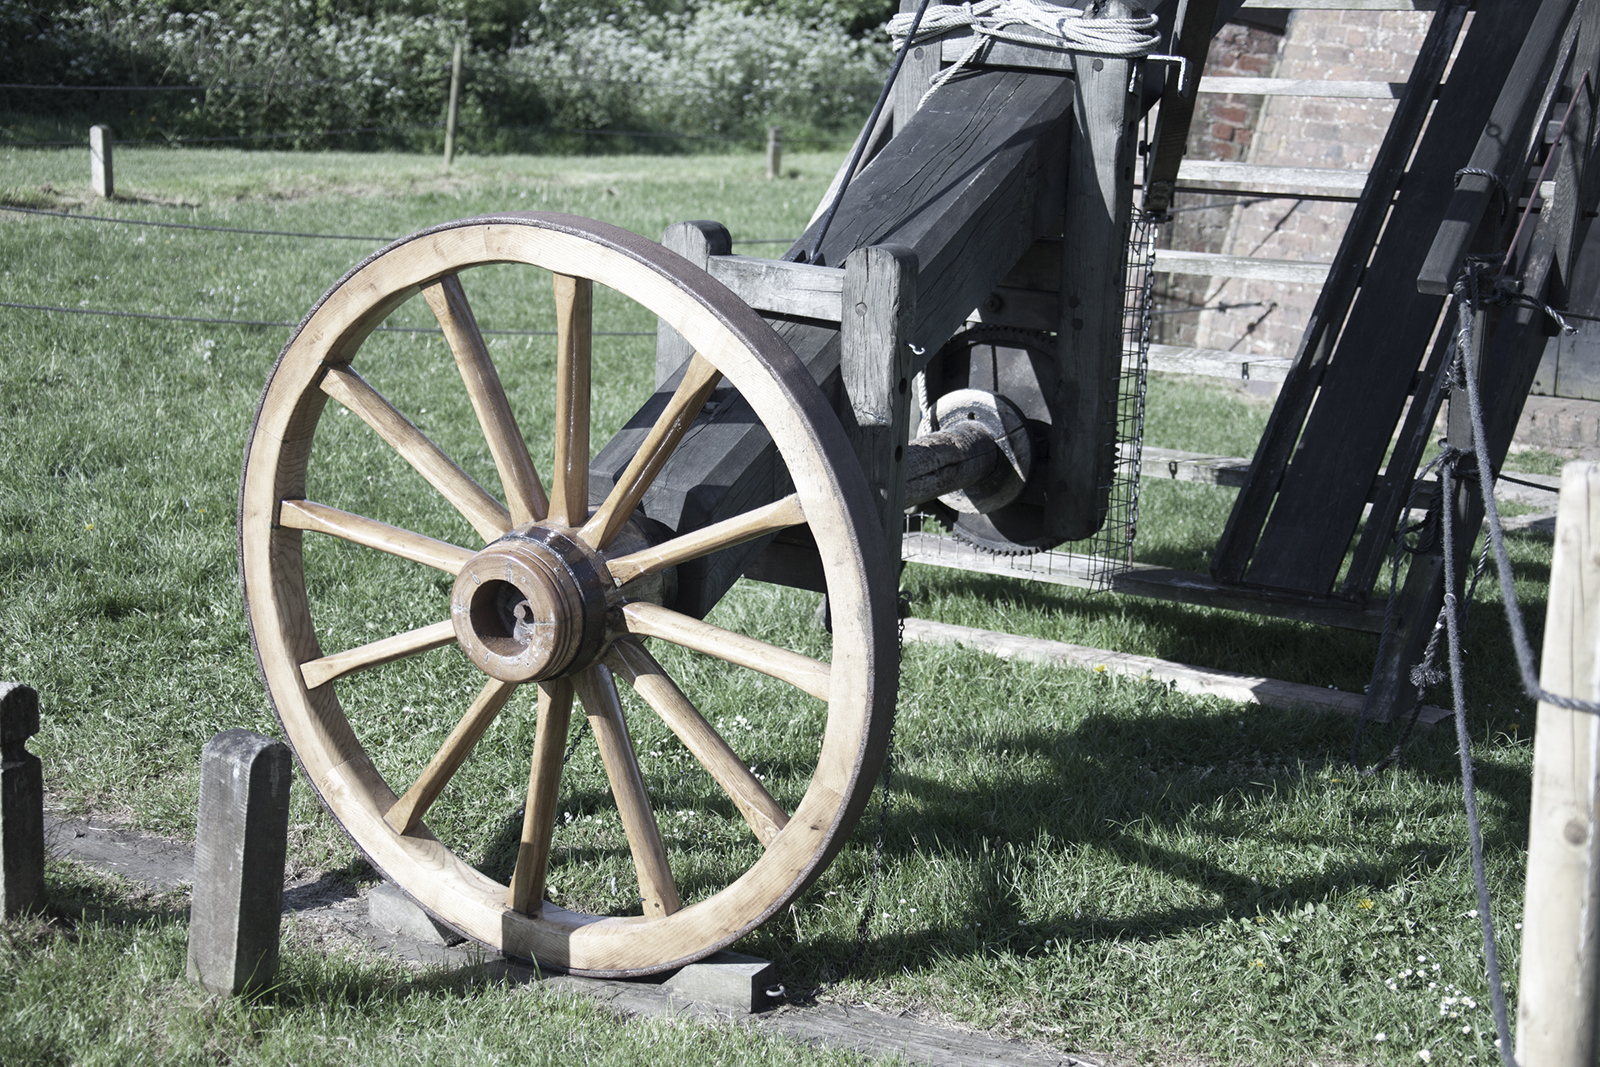 National Mills Weekend at Avoncroft Museum